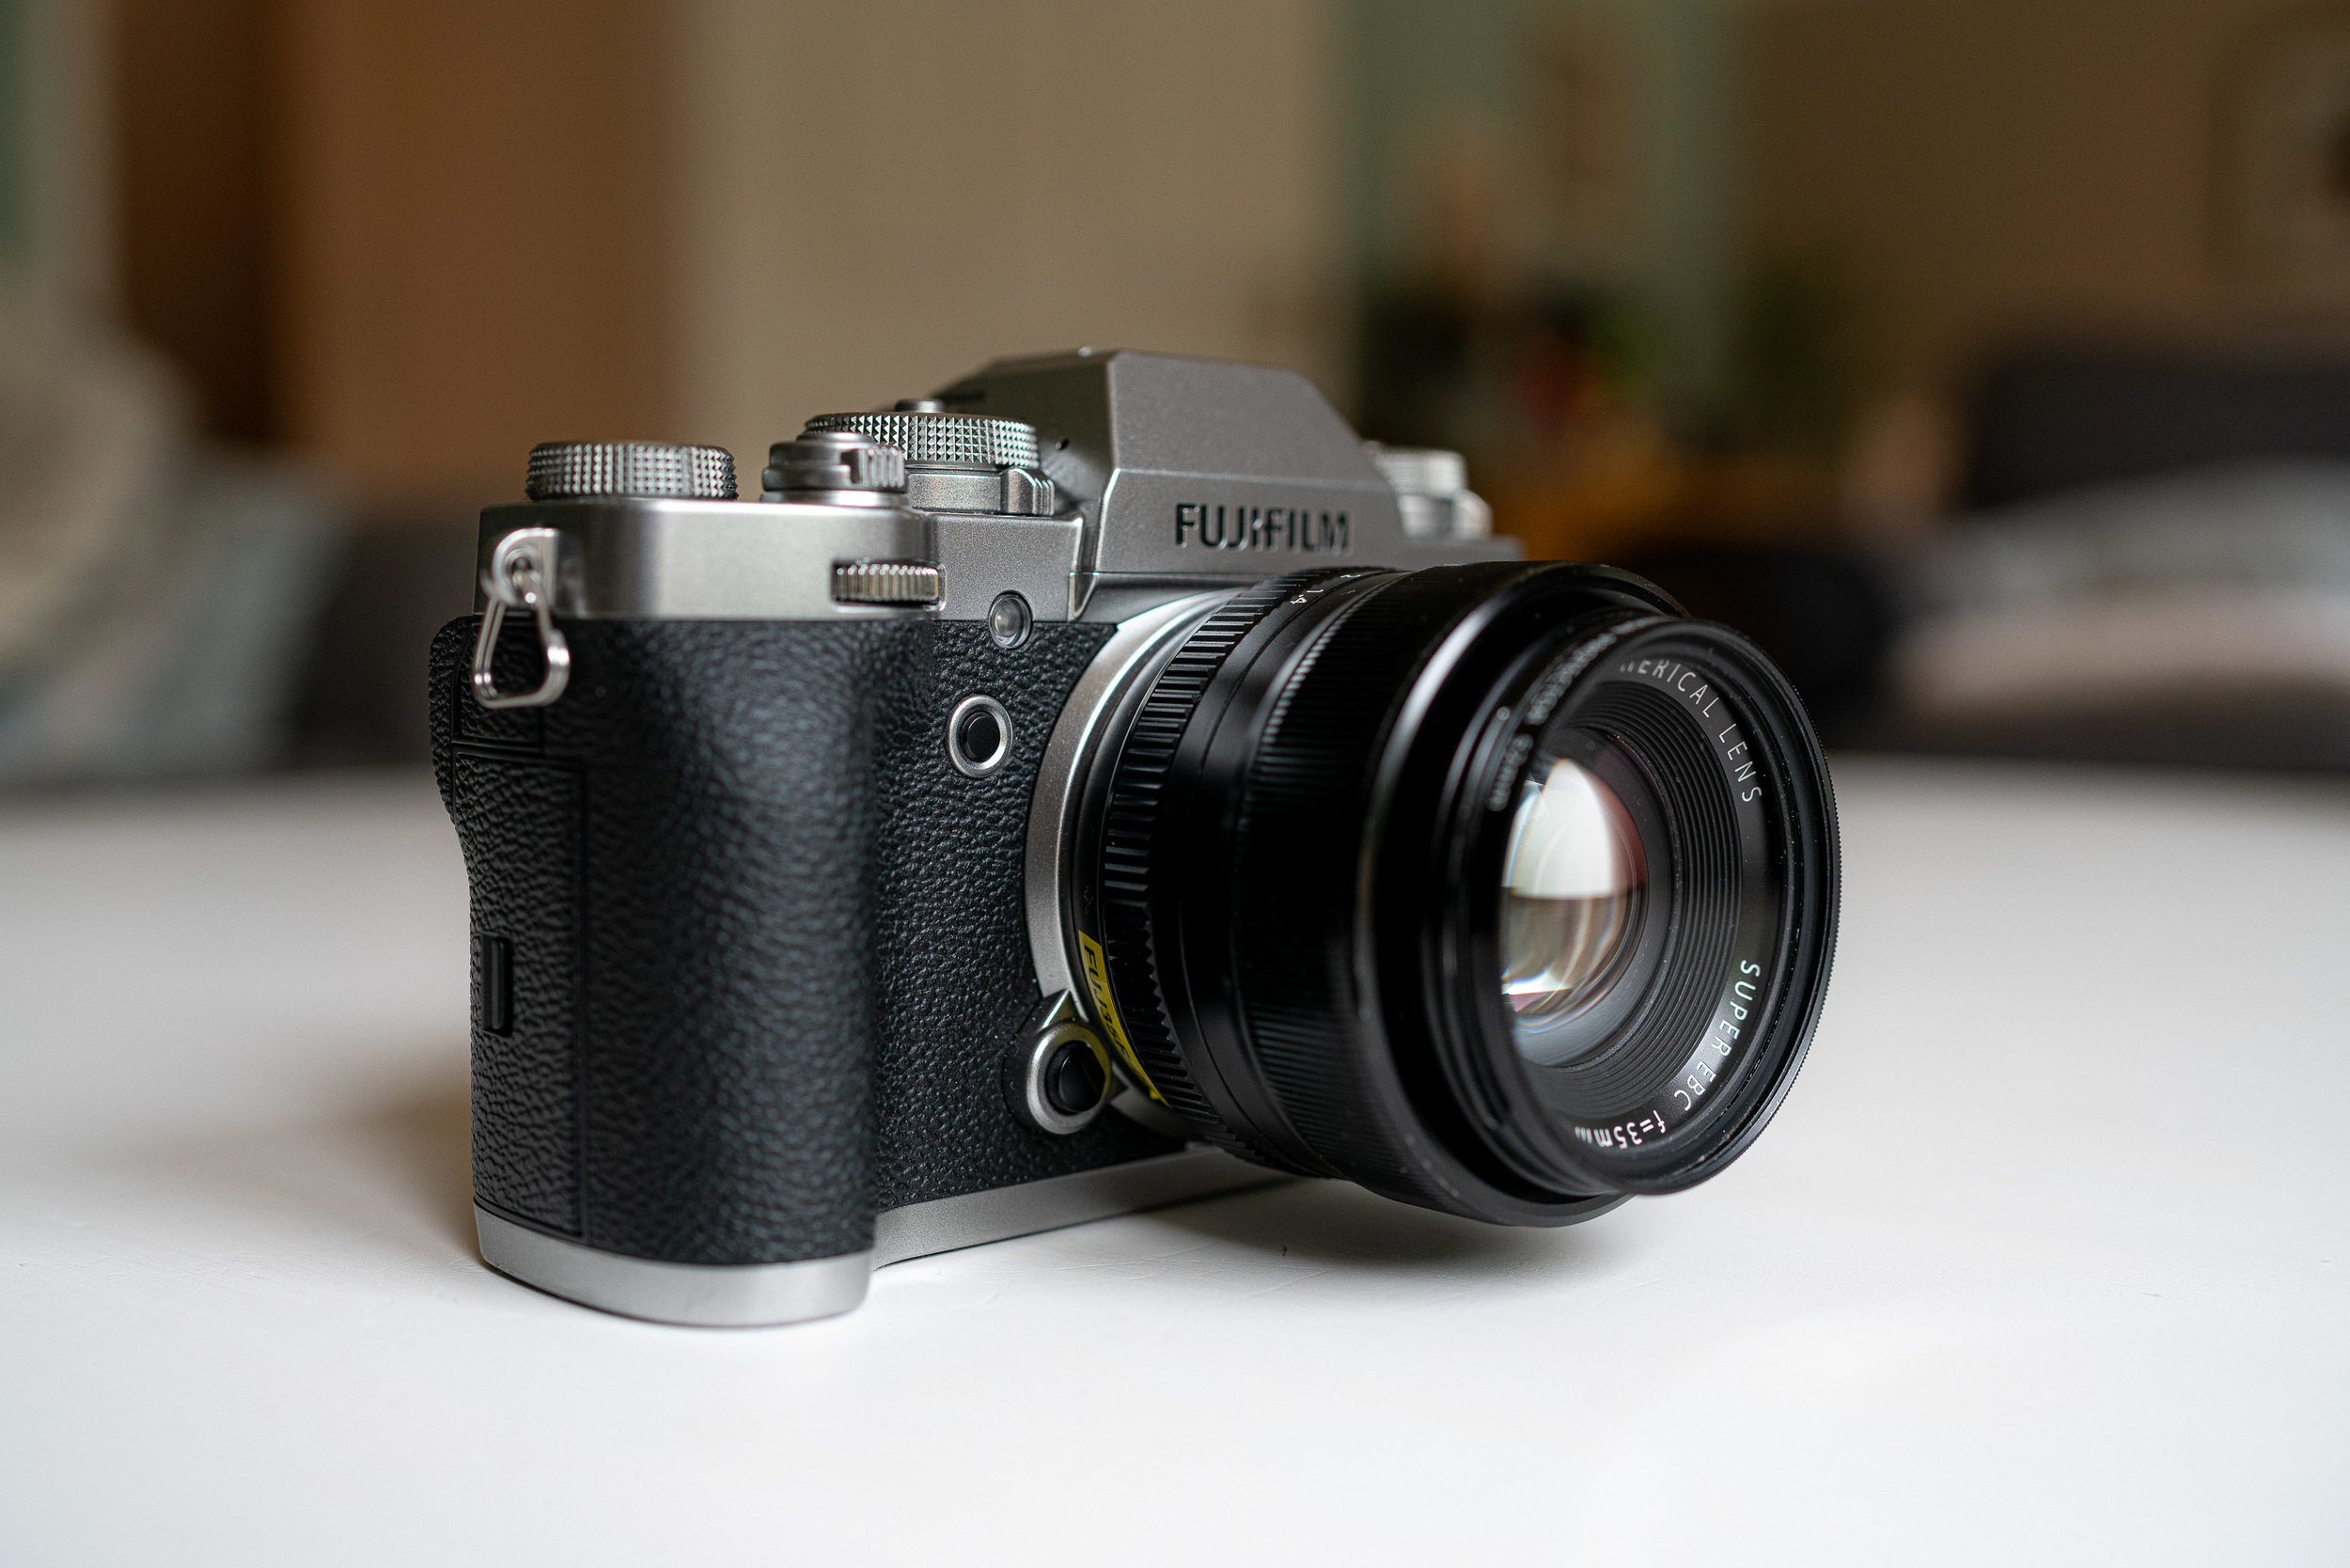 The Fujifilm X-T3.